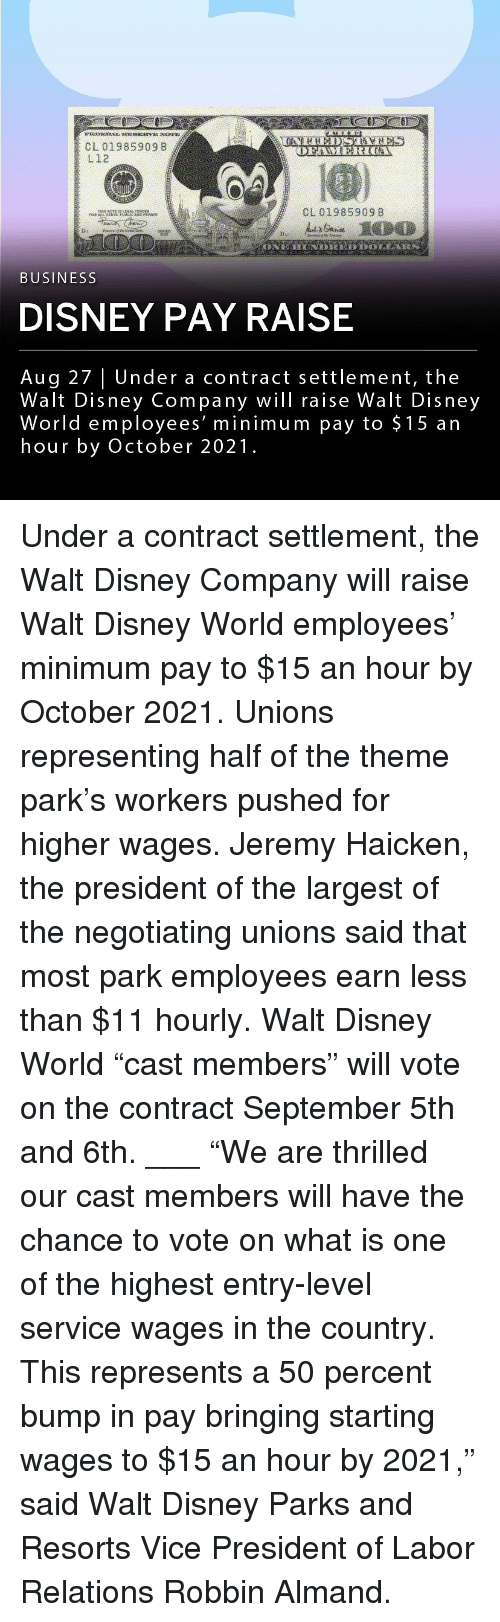 "Walt Disney: CL 01985909 B  L12  CL 01985909 8  BUSINESS  DISNEY PAY RAISE  Aug 27 | Under a contract settlement, the  Walt Disney Company wil raise Walt Disney  World employees' minimum pay to $15 an  hour by October 2021. Under a contract settlement, the Walt Disney Company will raise Walt Disney World employees' minimum pay to $15 an hour by October 2021. Unions representing half of the theme park's workers pushed for higher wages. Jeremy Haicken, the president of the largest of the negotiating unions said that most park employees earn less than $11 hourly. Walt Disney World ""cast members"" will vote on the contract September 5th and 6th. ___ ""We are thrilled our cast members will have the chance to vote on what is one of the highest entry-level service wages in the country. This represents a 50 percent bump in pay bringing starting wages to $15 an hour by 2021,"" said Walt Disney Parks and Resorts Vice President of Labor Relations Robbin Almand."